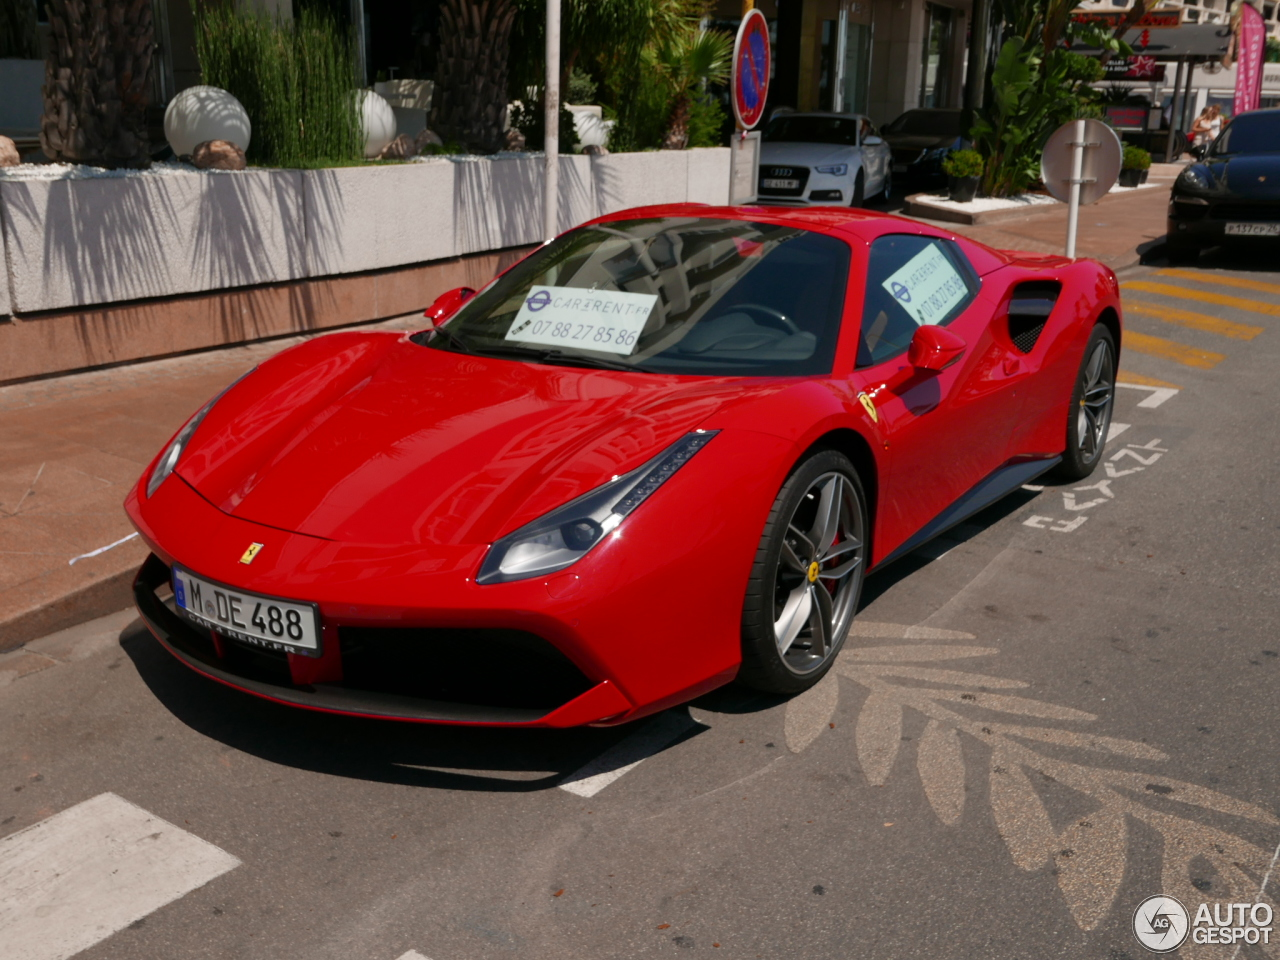 ferrari 488 spider 10 juillet 2016 autogespot. Black Bedroom Furniture Sets. Home Design Ideas